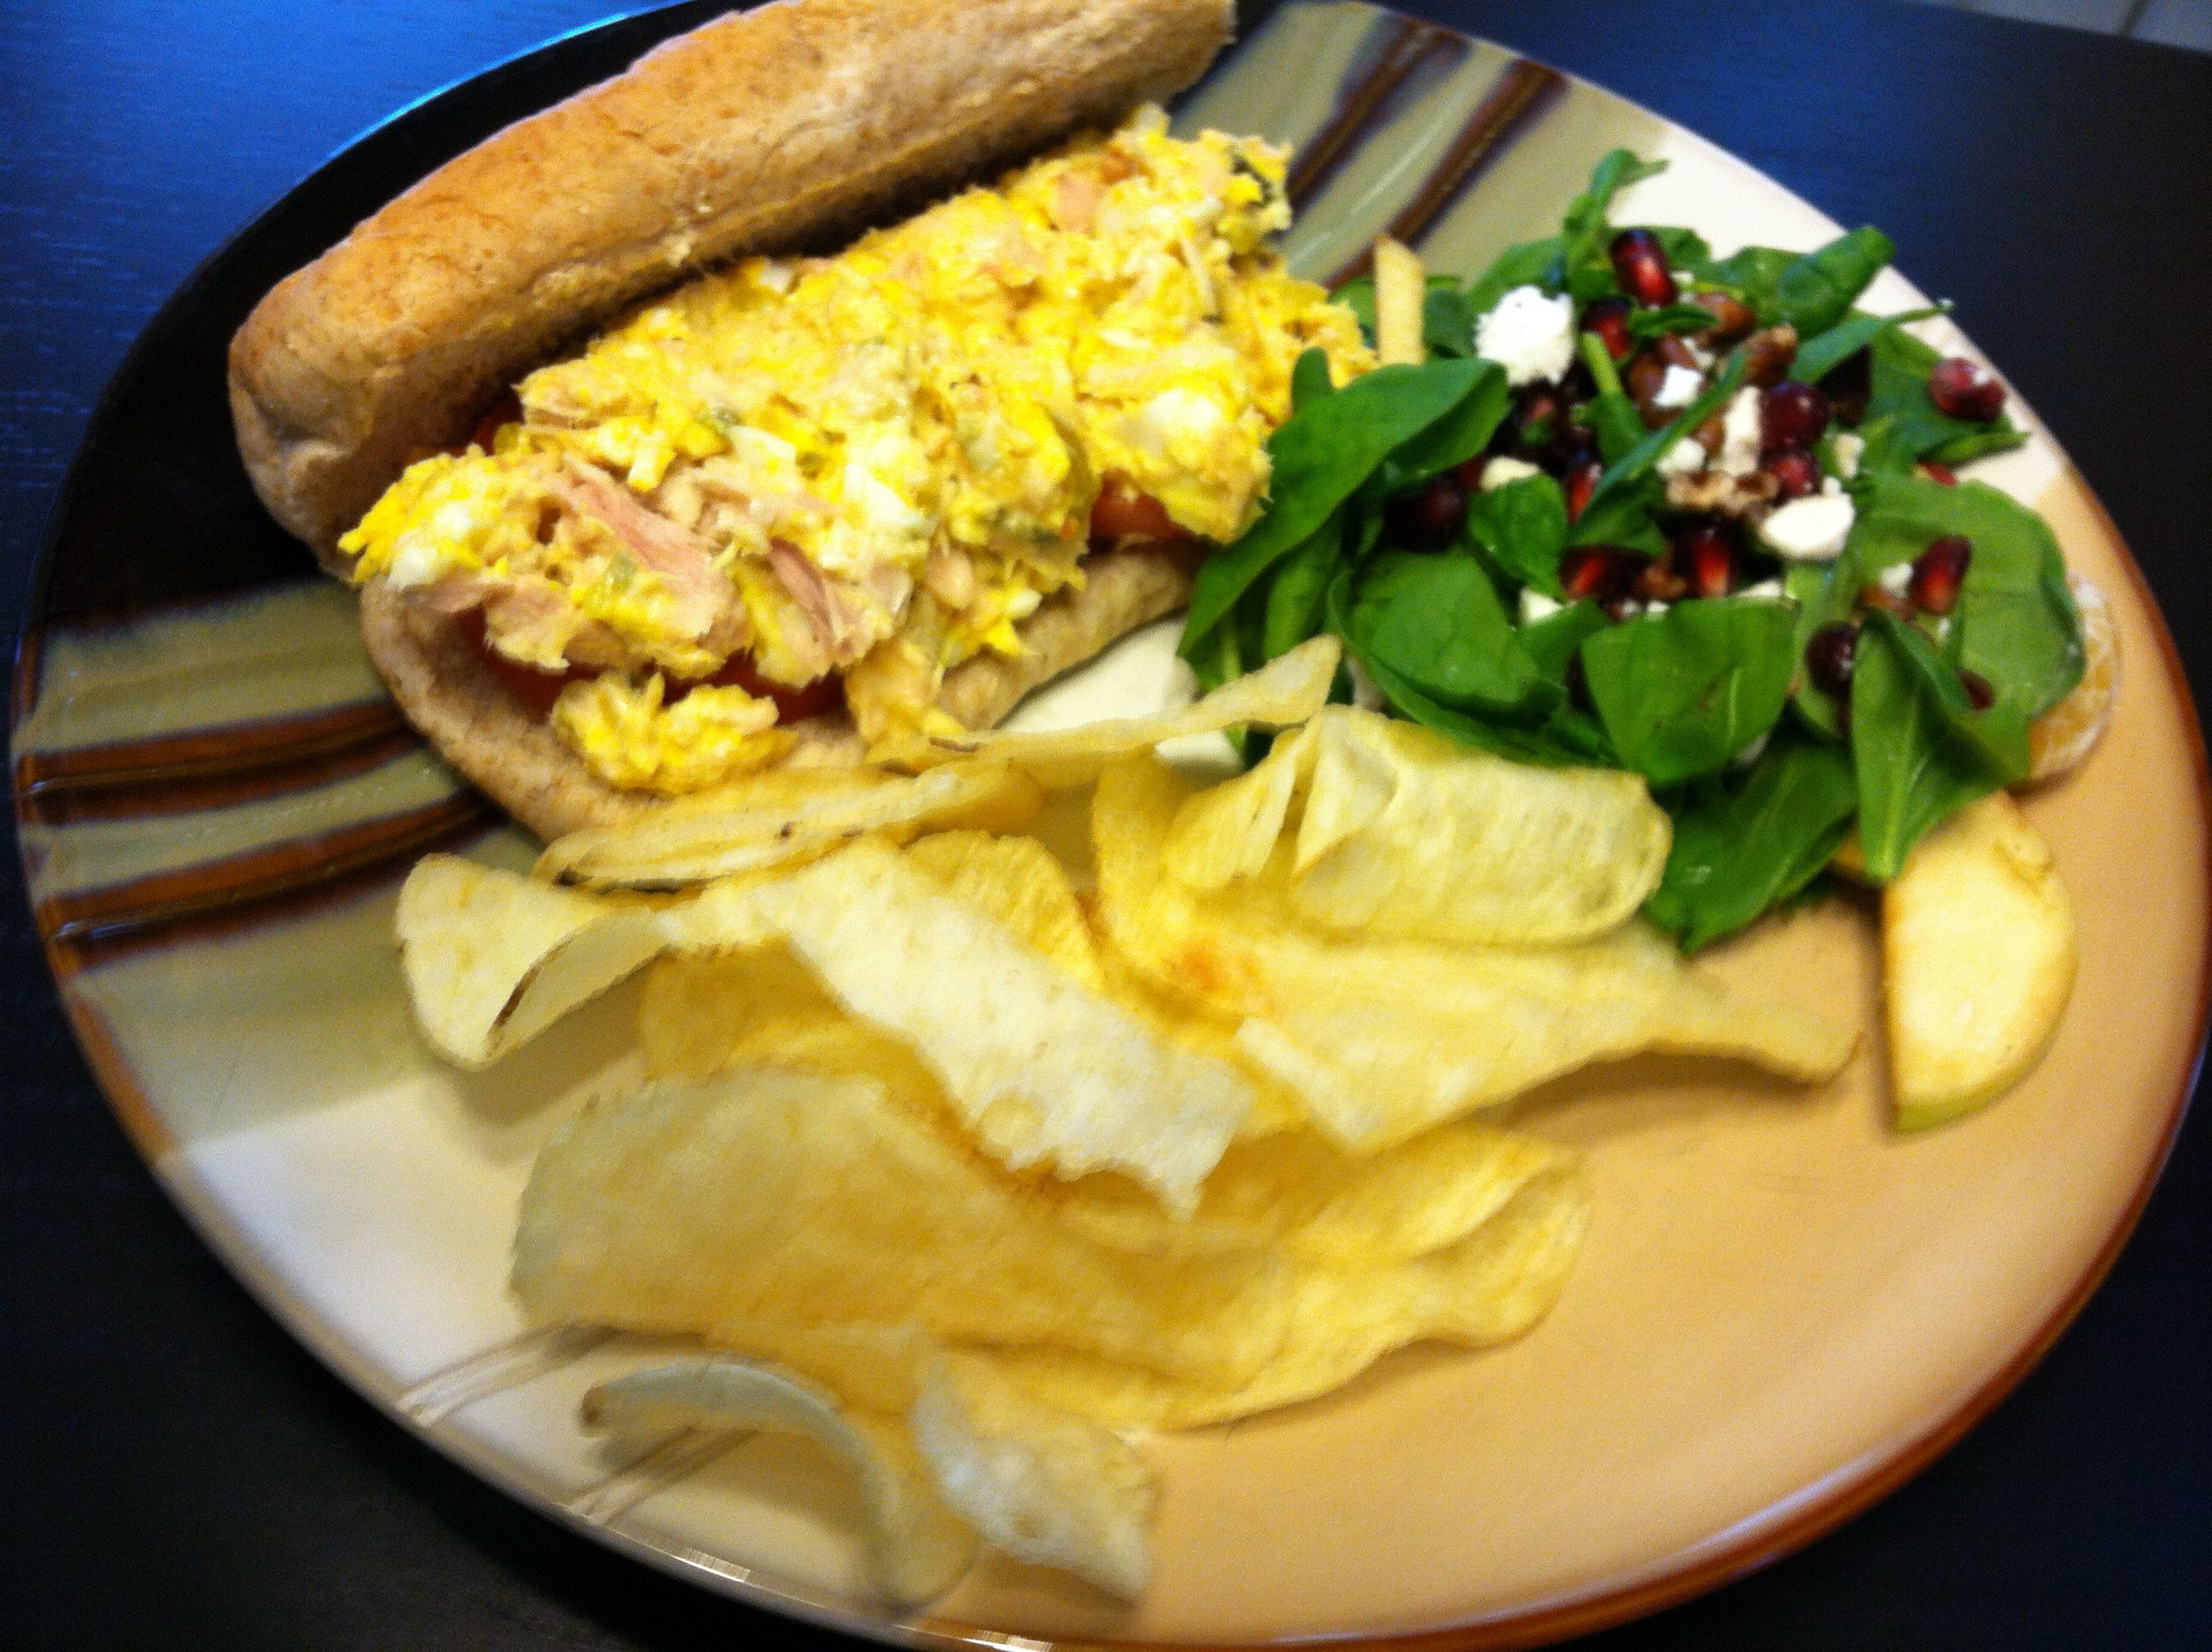 Day 3 - tuna salad on mini sub bun, with chips and letover salad from Day 1; the tuna is so yellow because I used hard boiled farm fresh eggs from my son's friend who is raising his own chickens